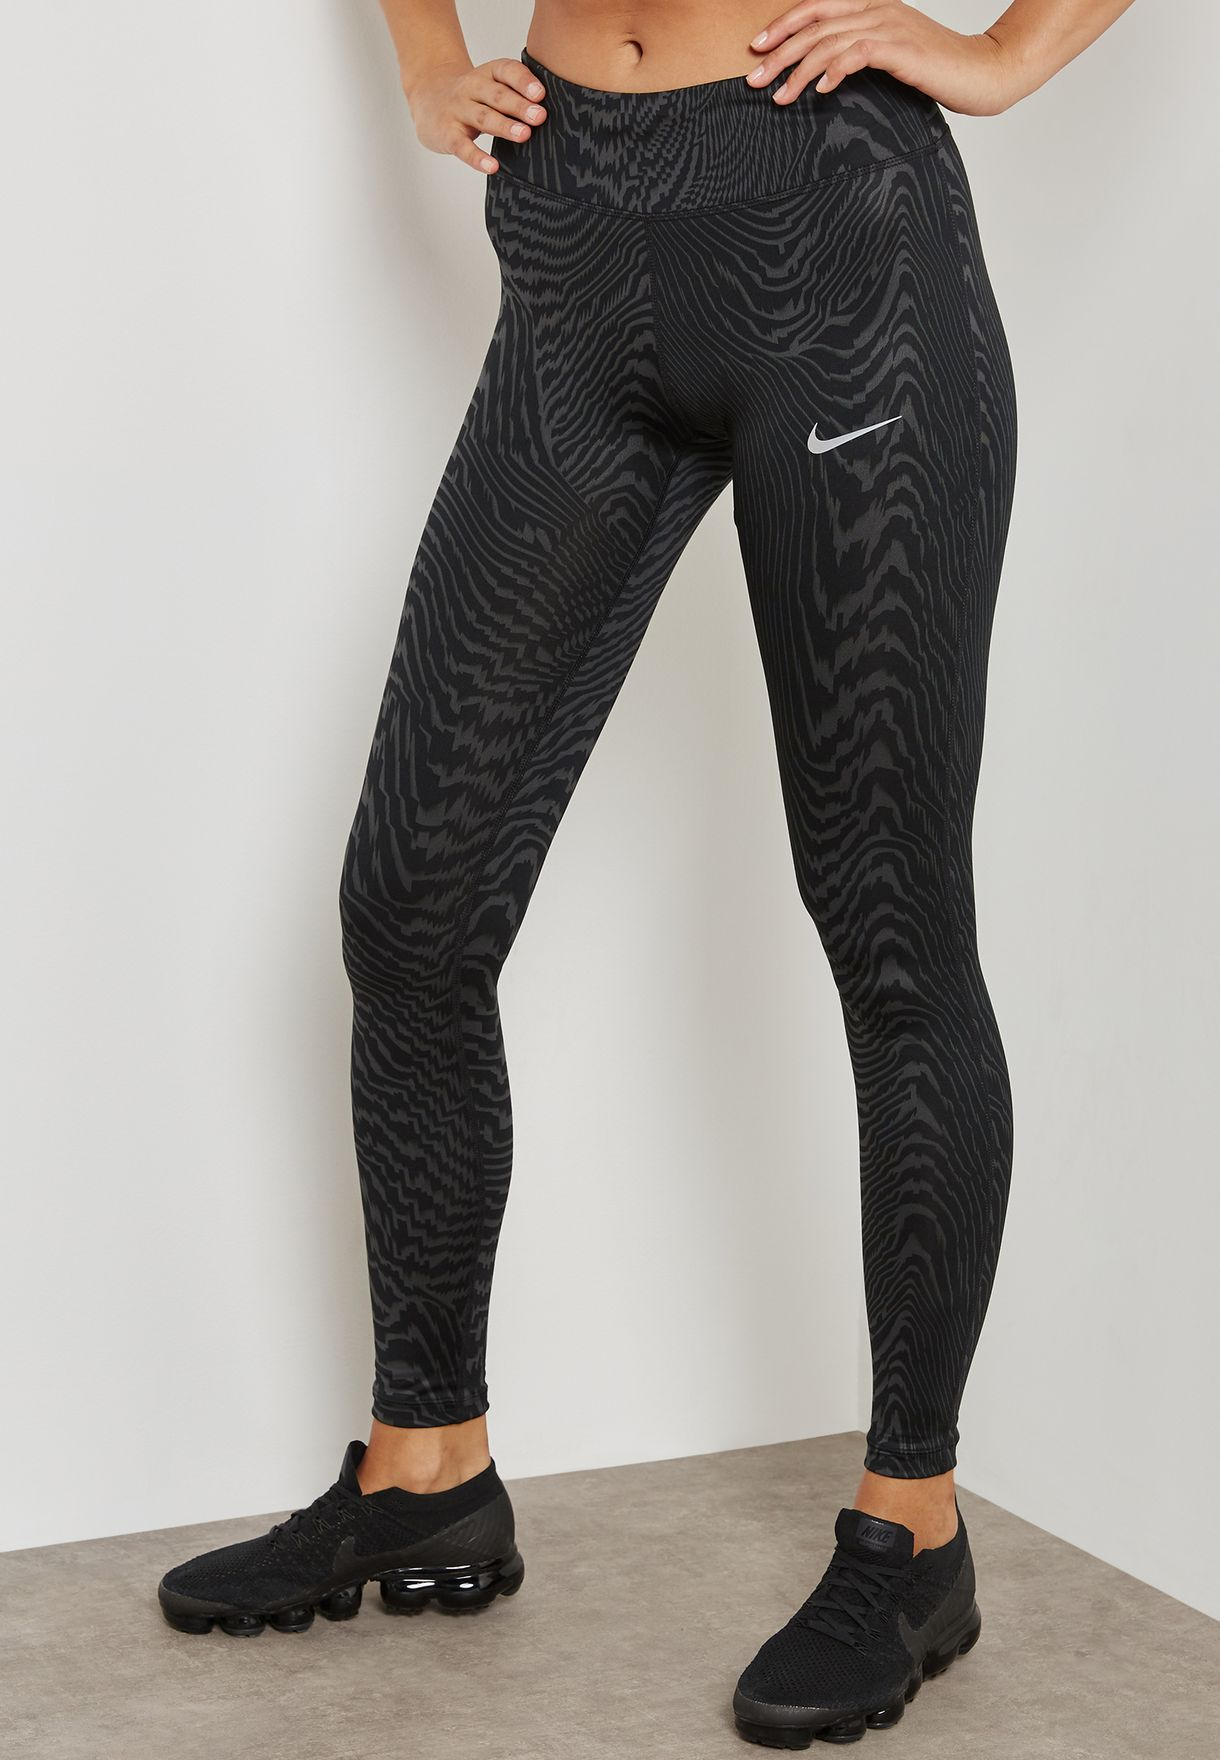 743f79feff0cf8 Shop Nike prints Power Essential Leggings 902257-060 for Women in ...